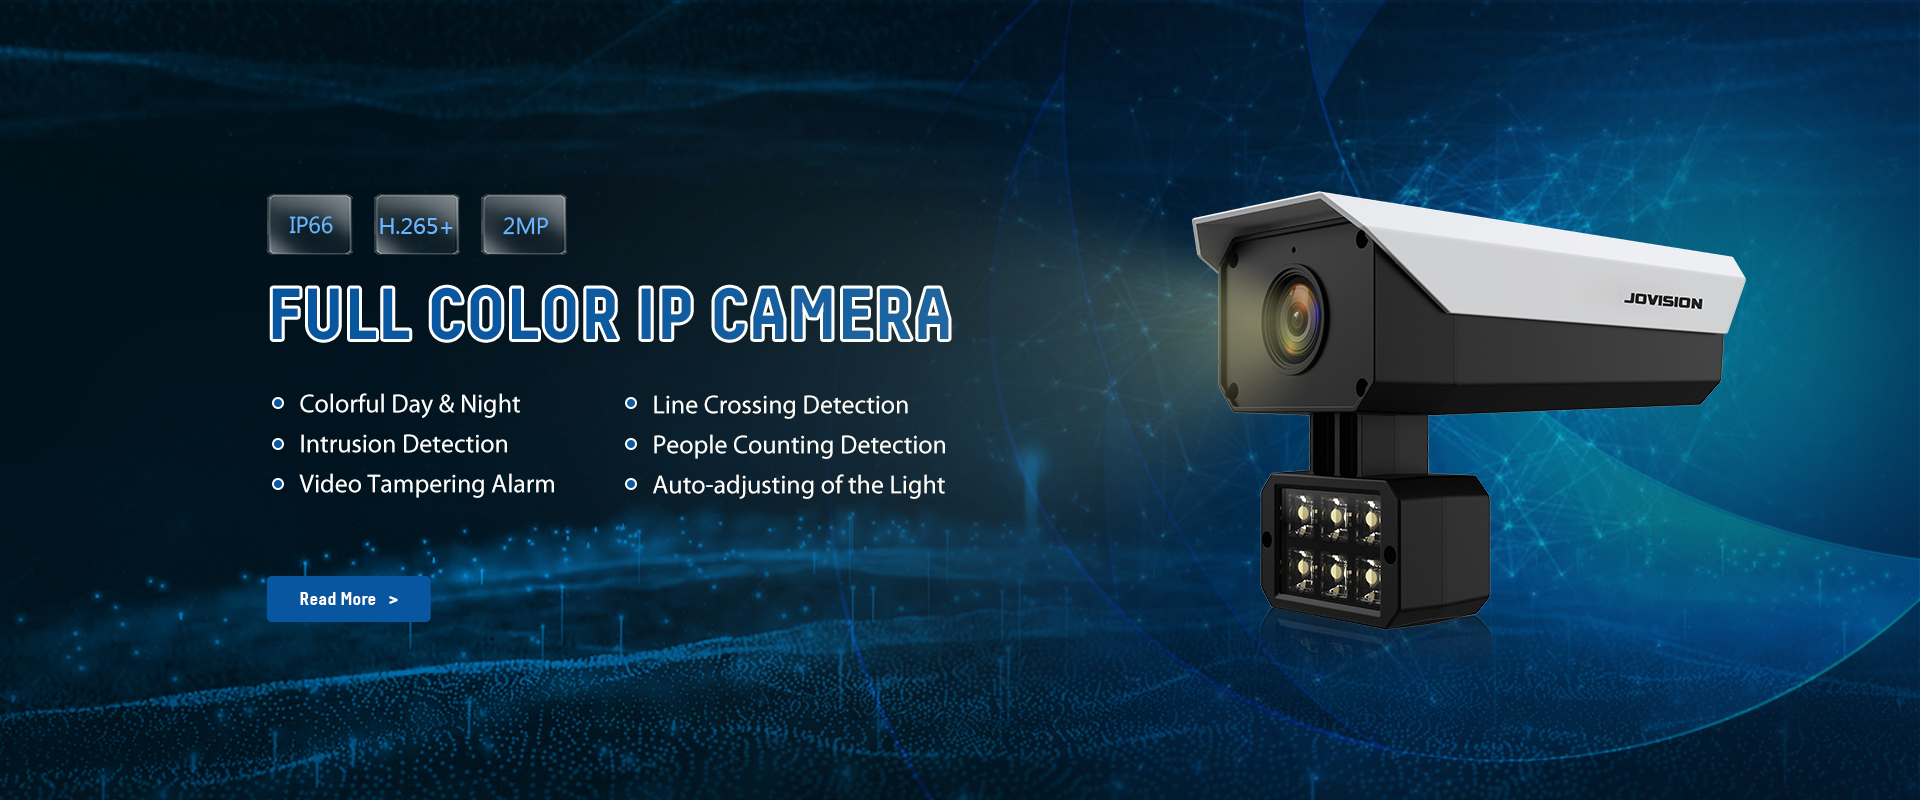 Camera CANKACAC-N816-LYS 2.0MP H.265 Full Color IP